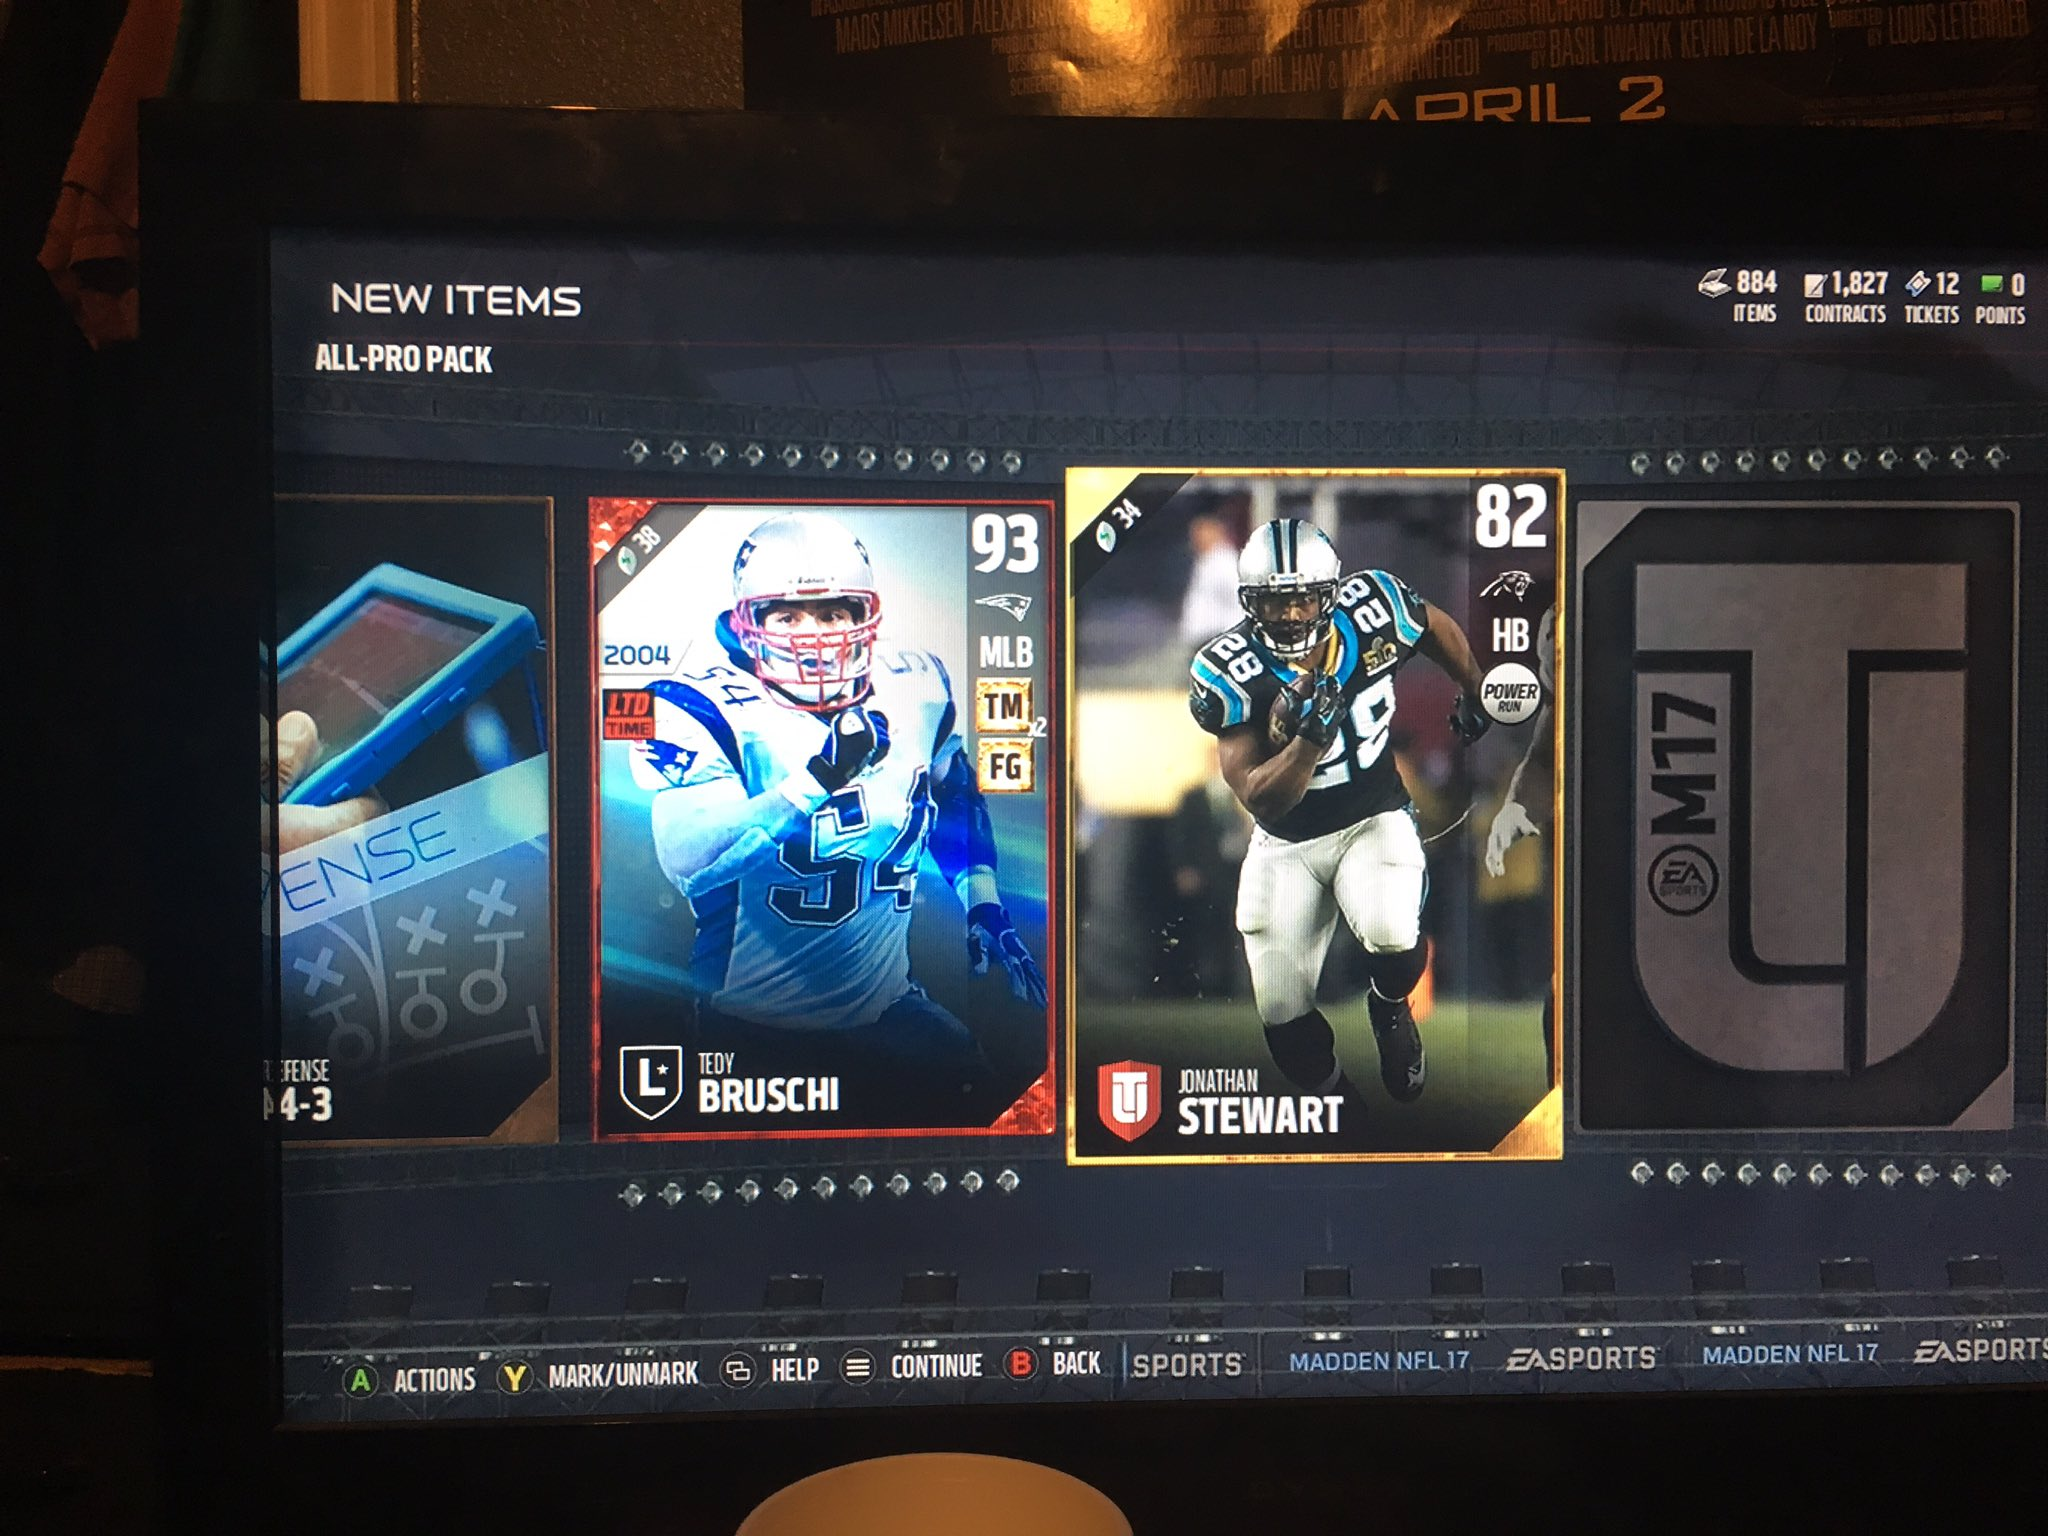 So it happened again...what did I do to deserve this greatness? Thanks so much EA! @EASPORTS_MUT @MUTGuru https://t.co/VzDCPJ48Dd